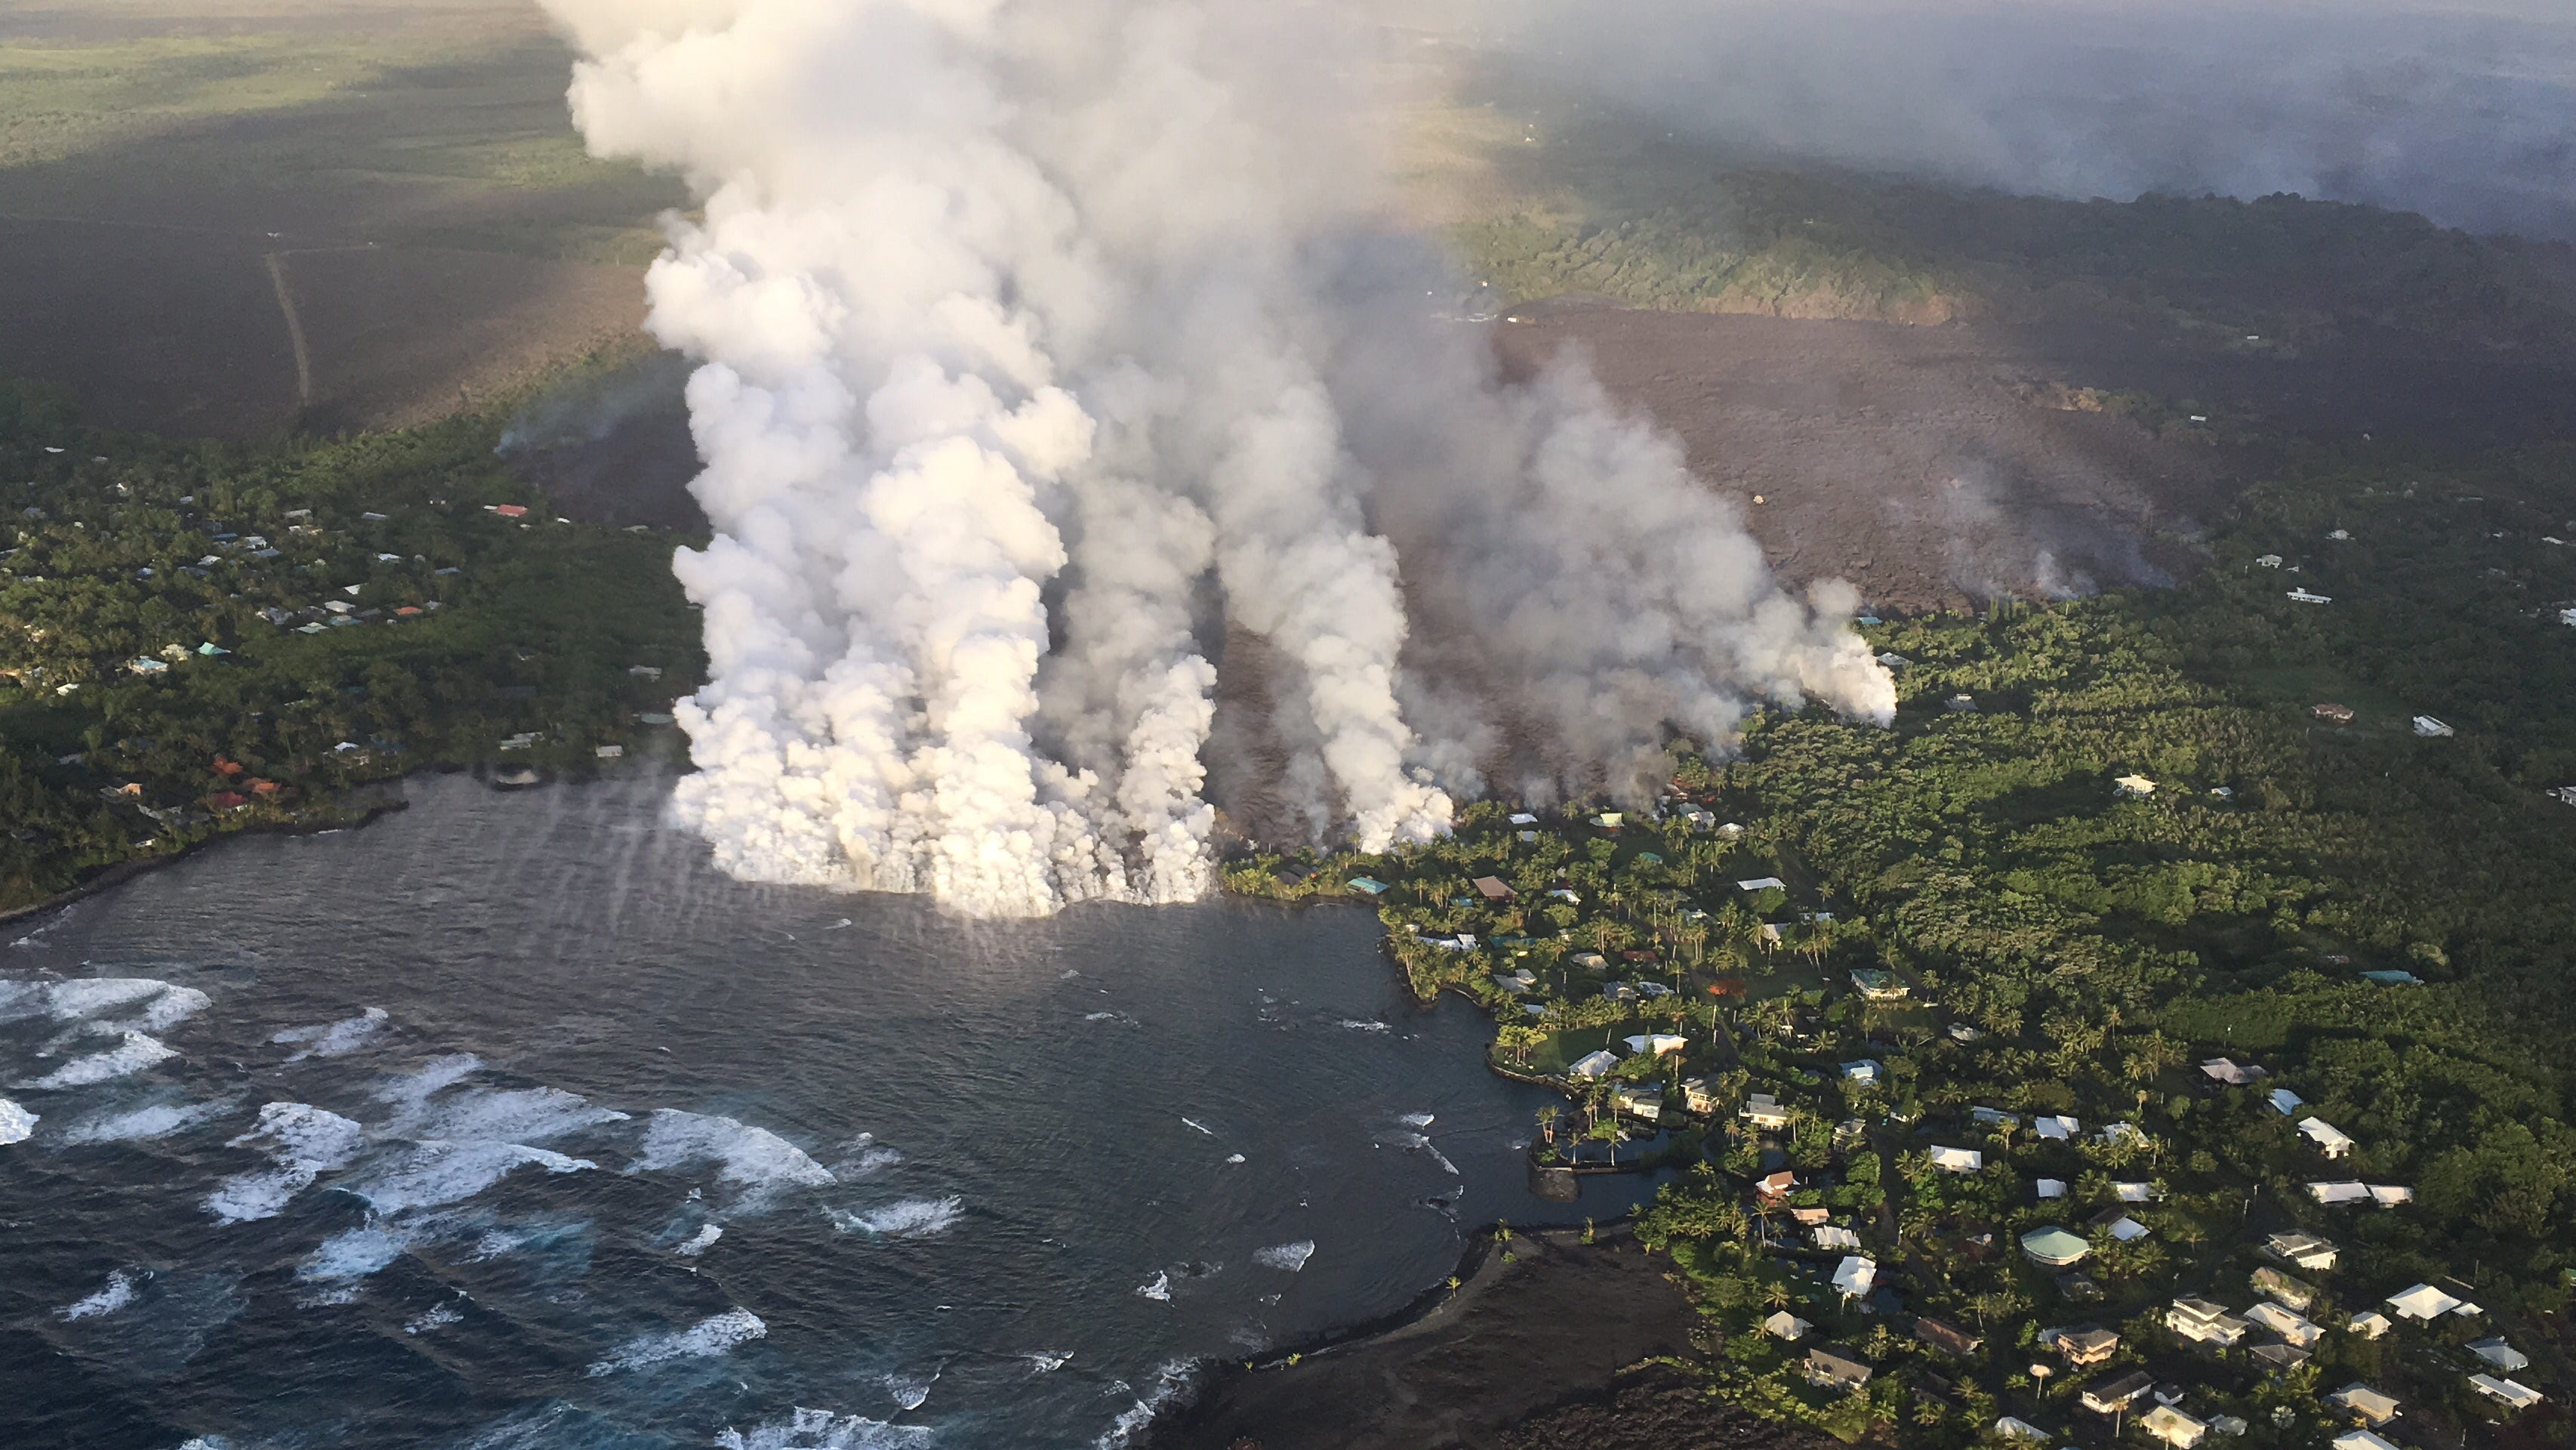 A handout photo made available by the United States Geological Survey (USGS) shows lava flow originating from Fissure 8 entering Kapoho Bay, Hawaii, June 4, 2018. The ongoing eruption of Kilauea is the largest in decades.